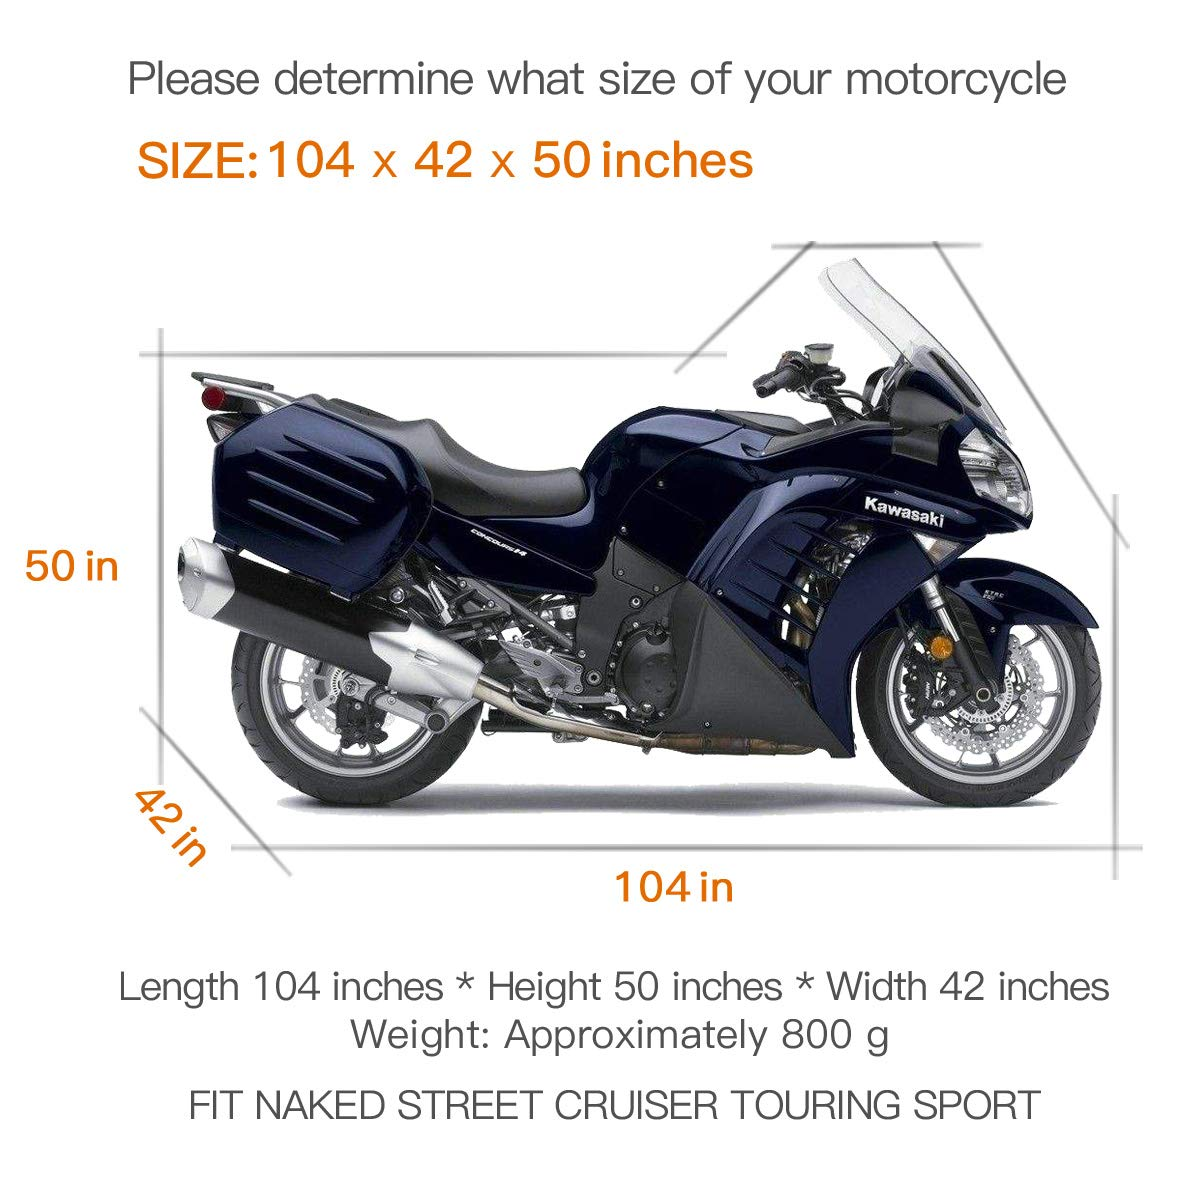 Waterproof Motorcycle Cover All Weather Outdoor Harley Road King Exhaust Moreover Davidson Engine Parts Diagram Protection 210d Oxford Durable And Tear Proof For 104 Inches Xxl Motorcycles Like Honda Yamaha Suzuki More Automotive